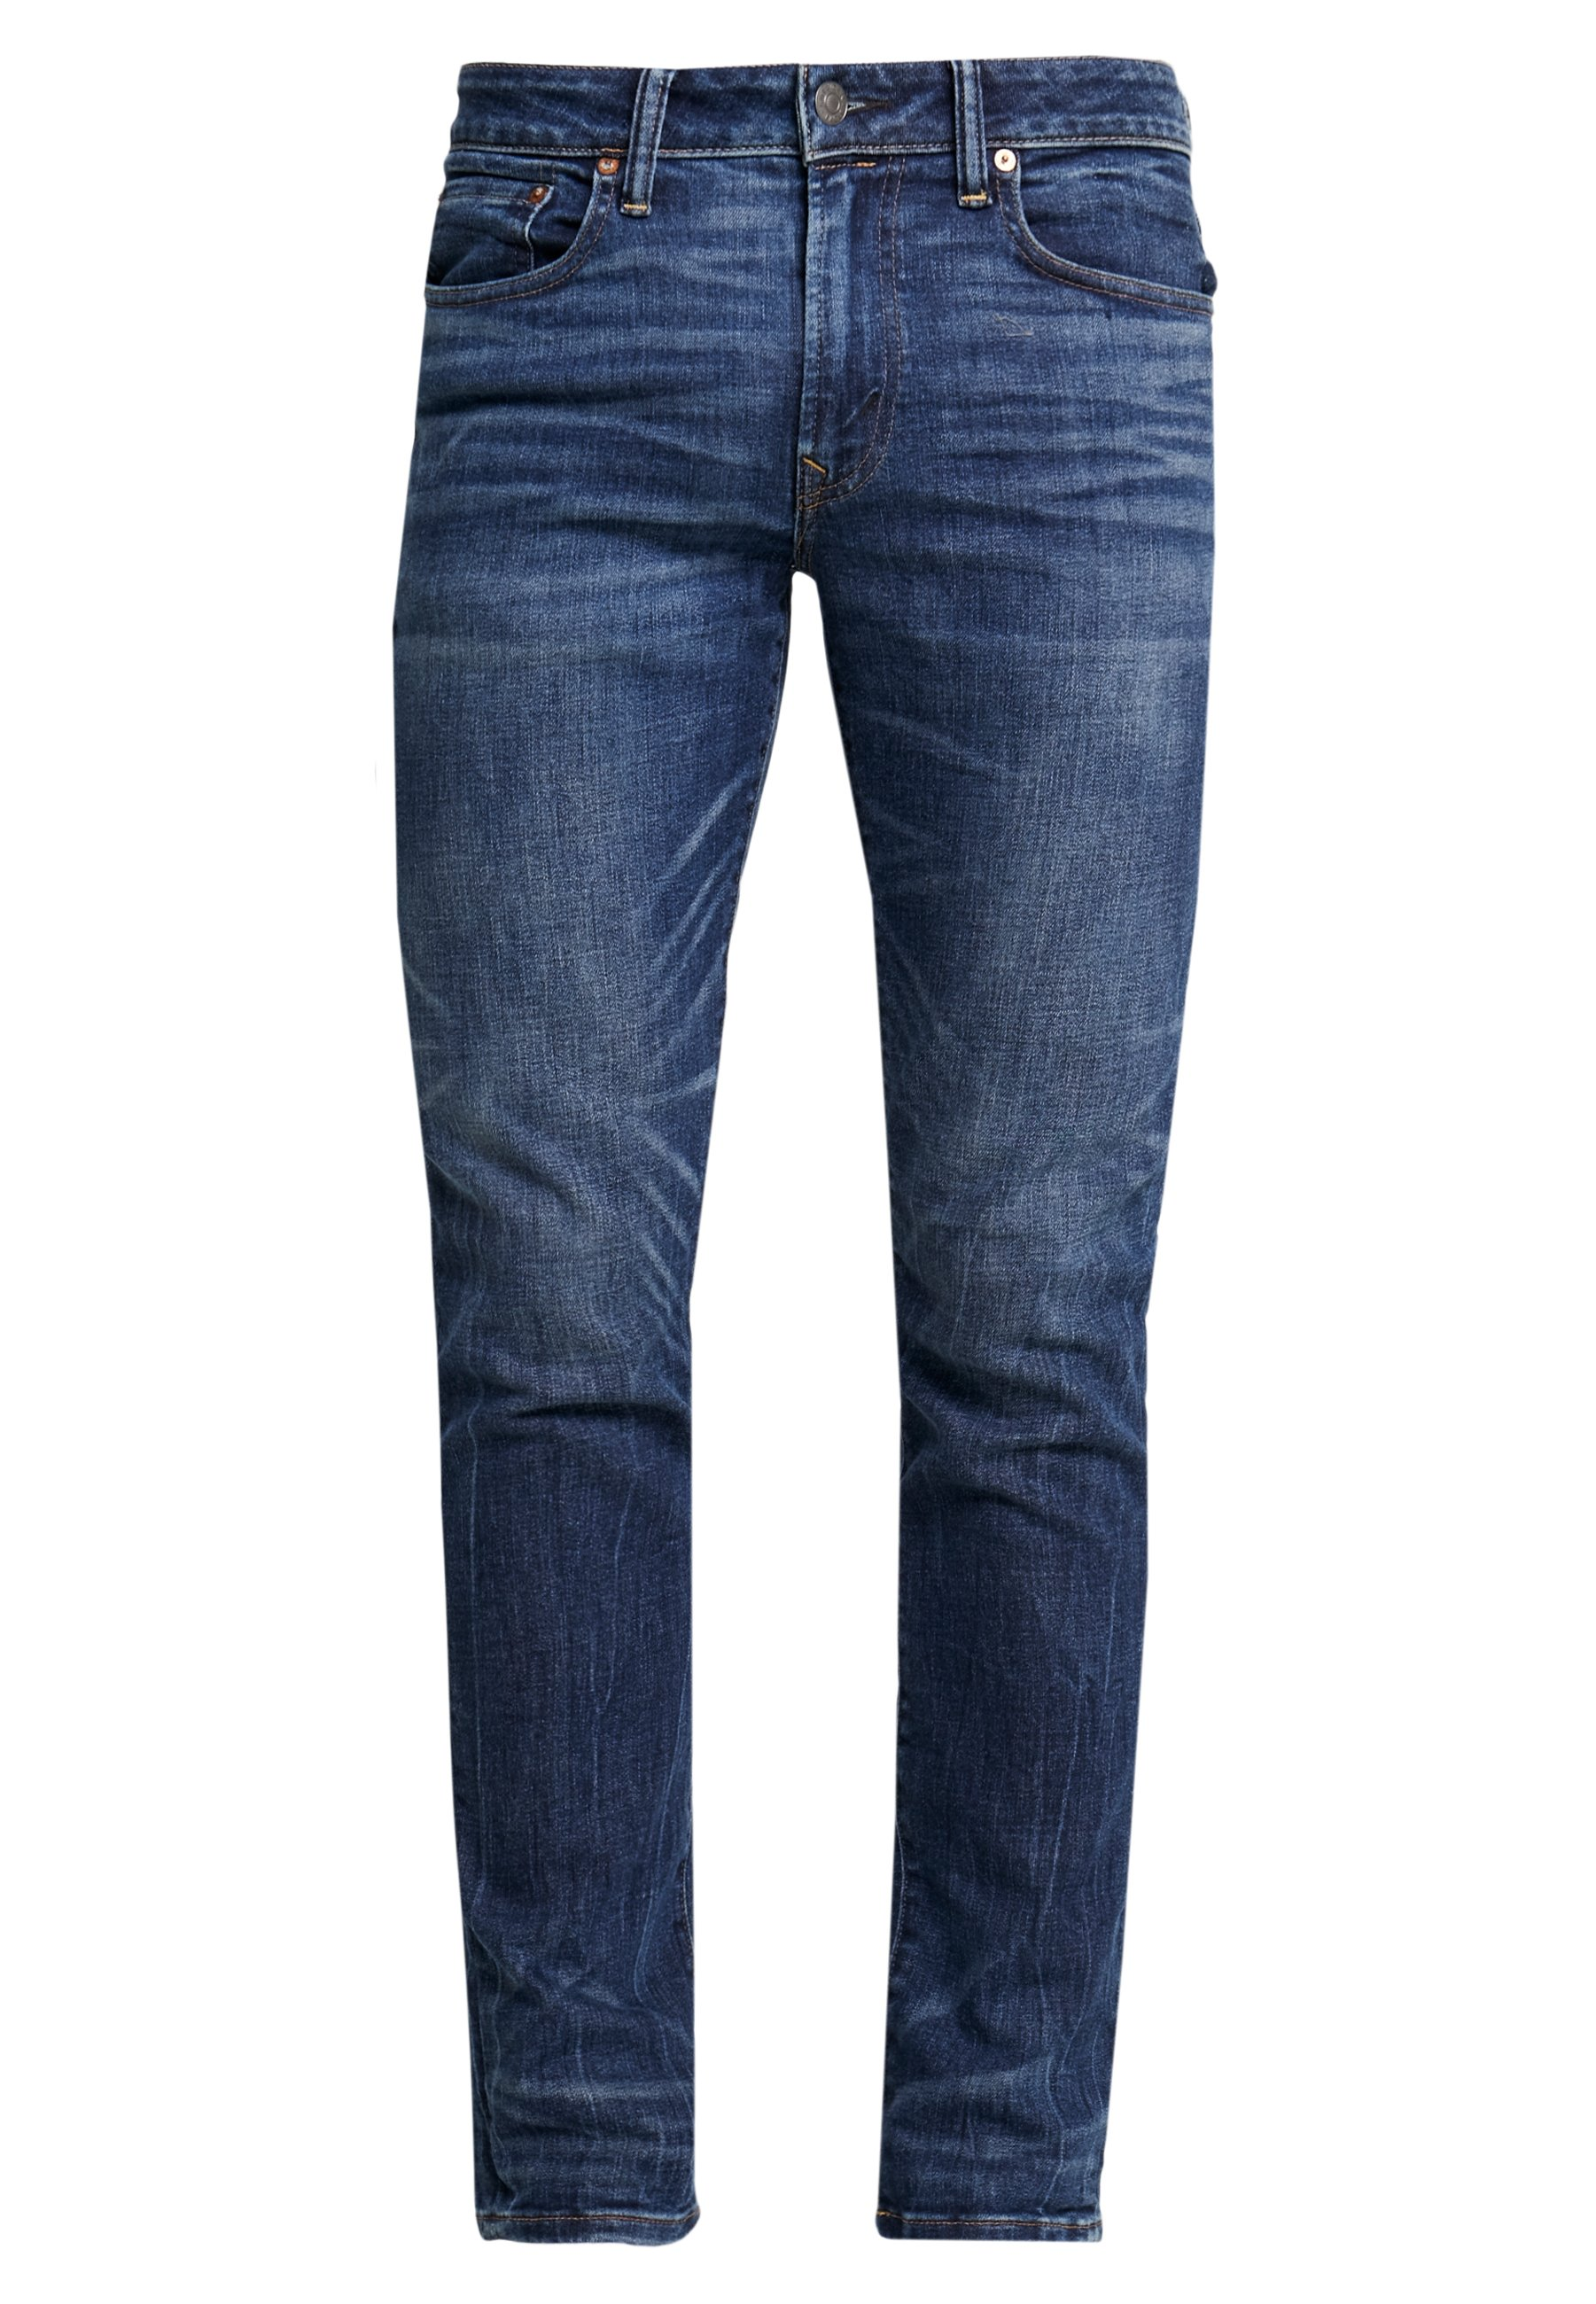 American Eagle Jean slim - dark wash